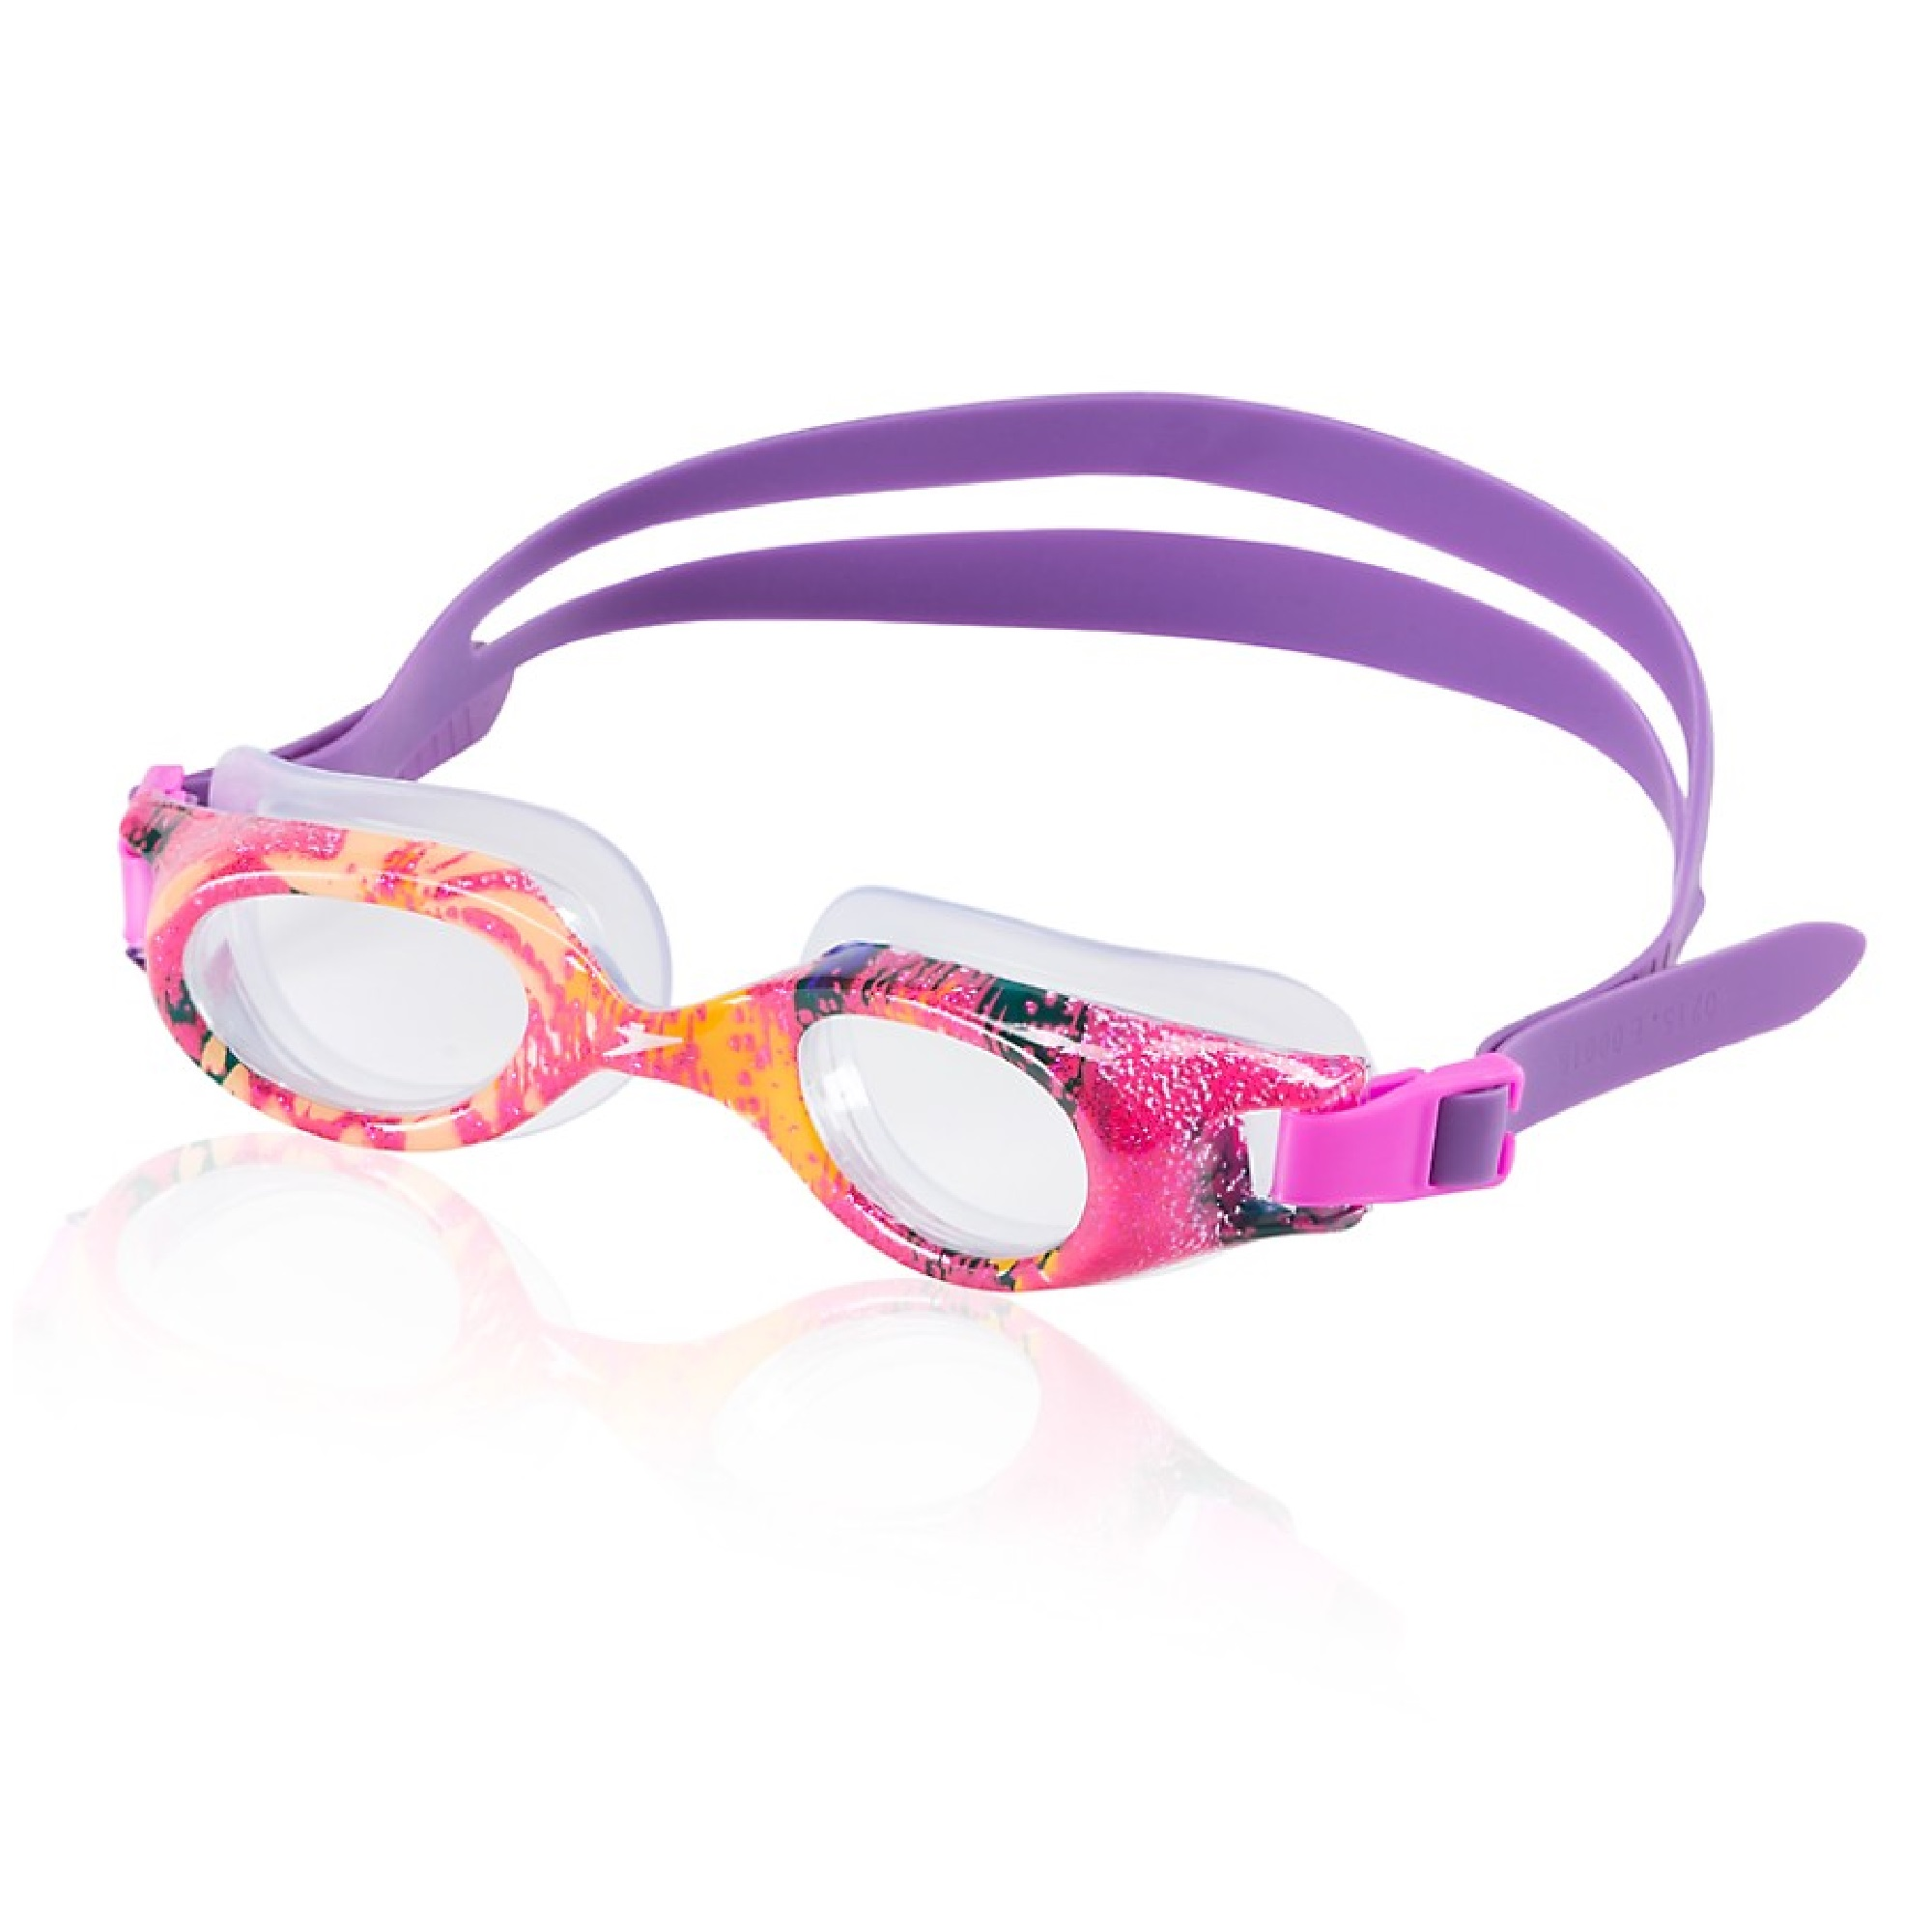 Speedo Junior Hydrospex Print Goggle - Kids Recreation Goggle - Pink